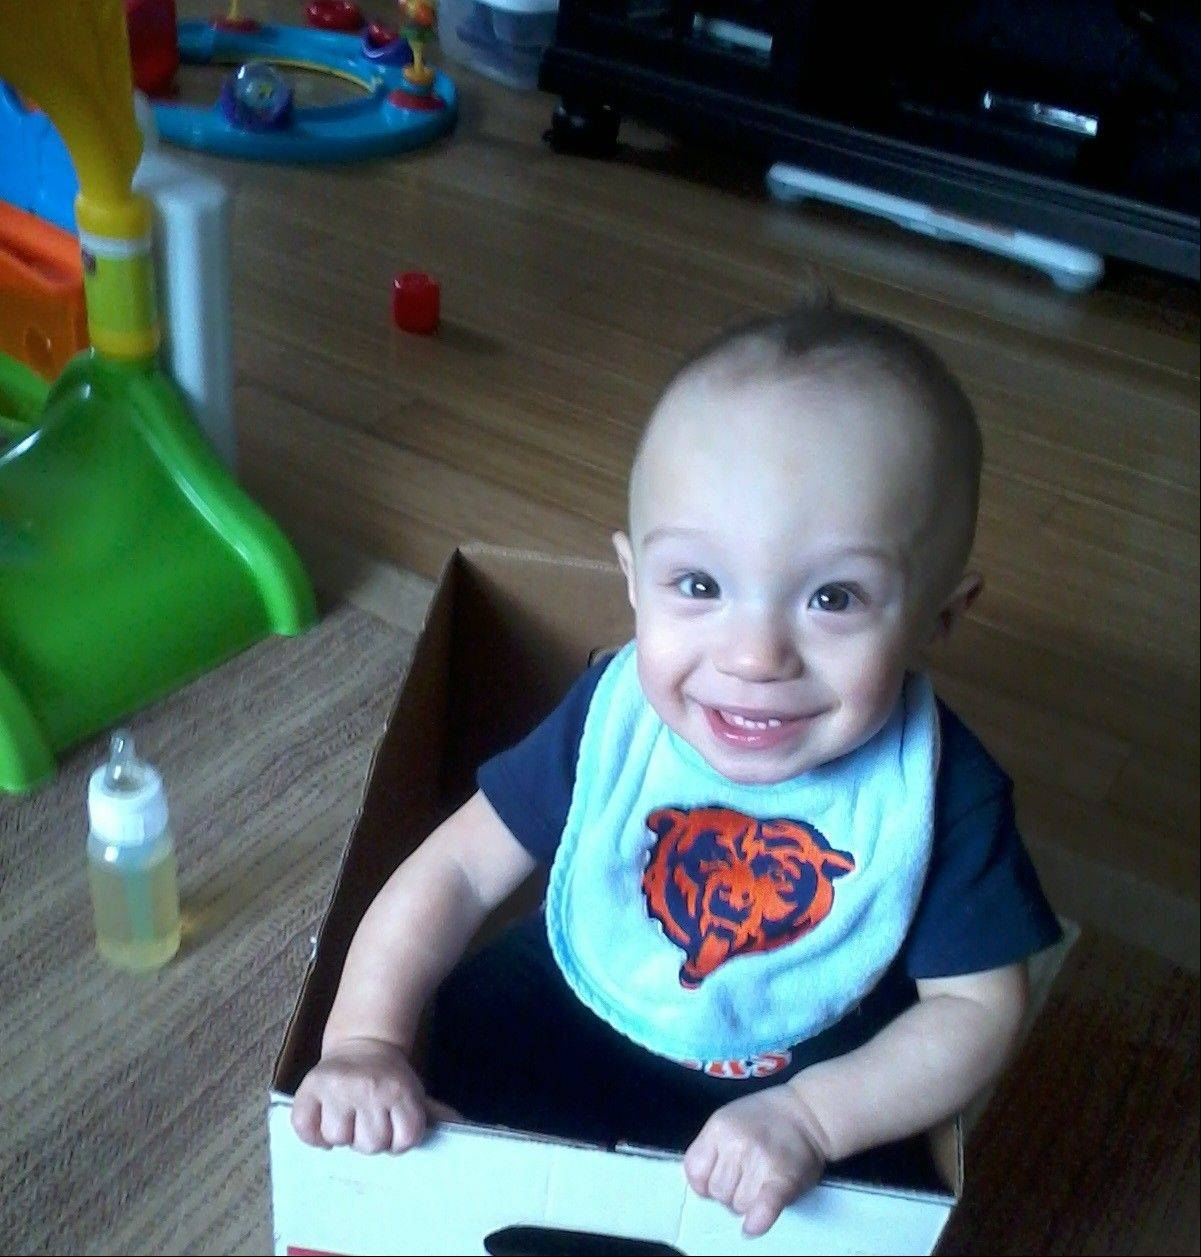 Henry Greske of Bolingbrook was born just shy of 27 weeks gestation. He�s now an active 13-month-old.